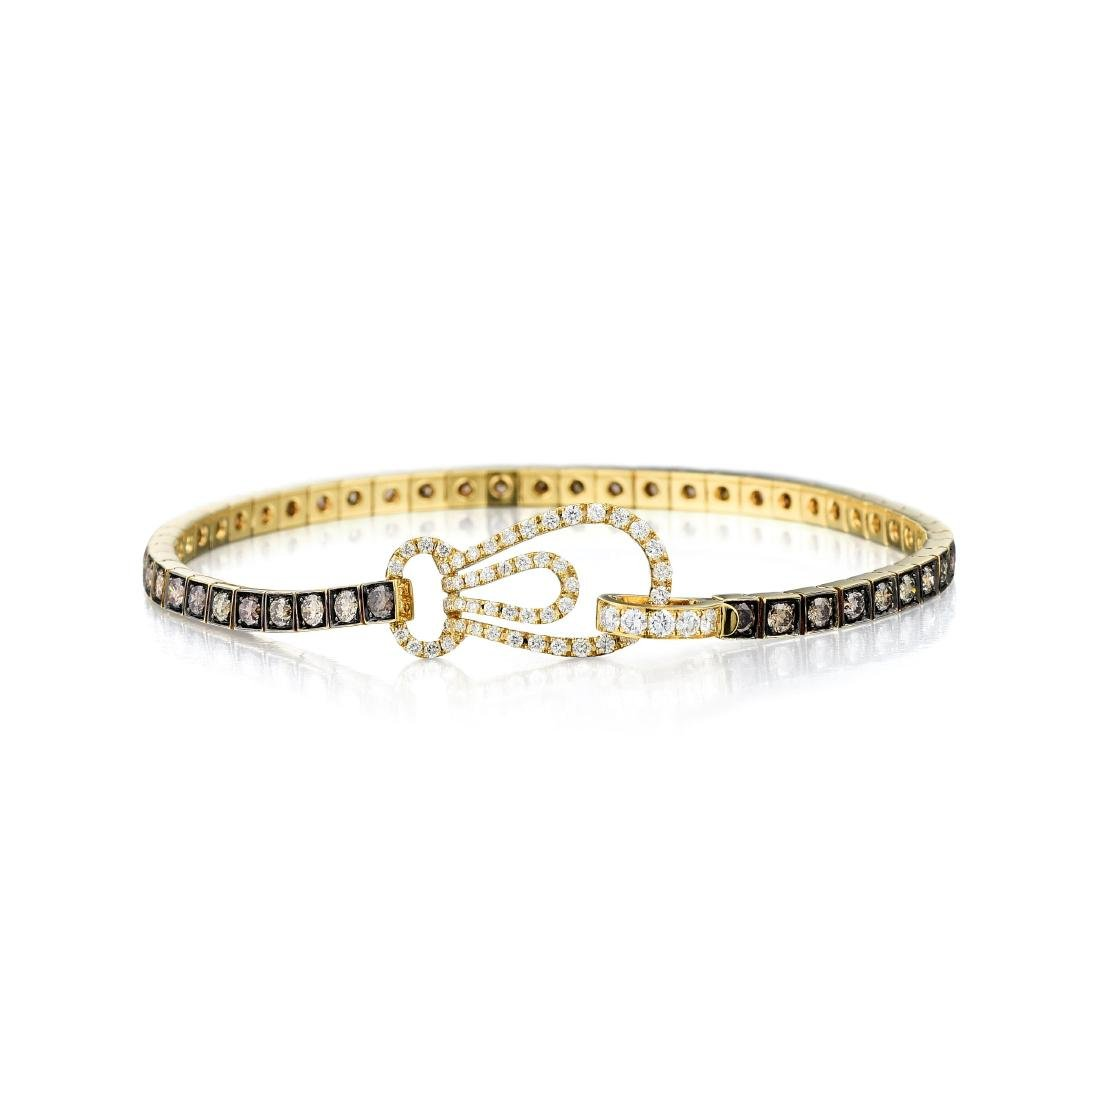 An 18K Colored Diamond Bracelet